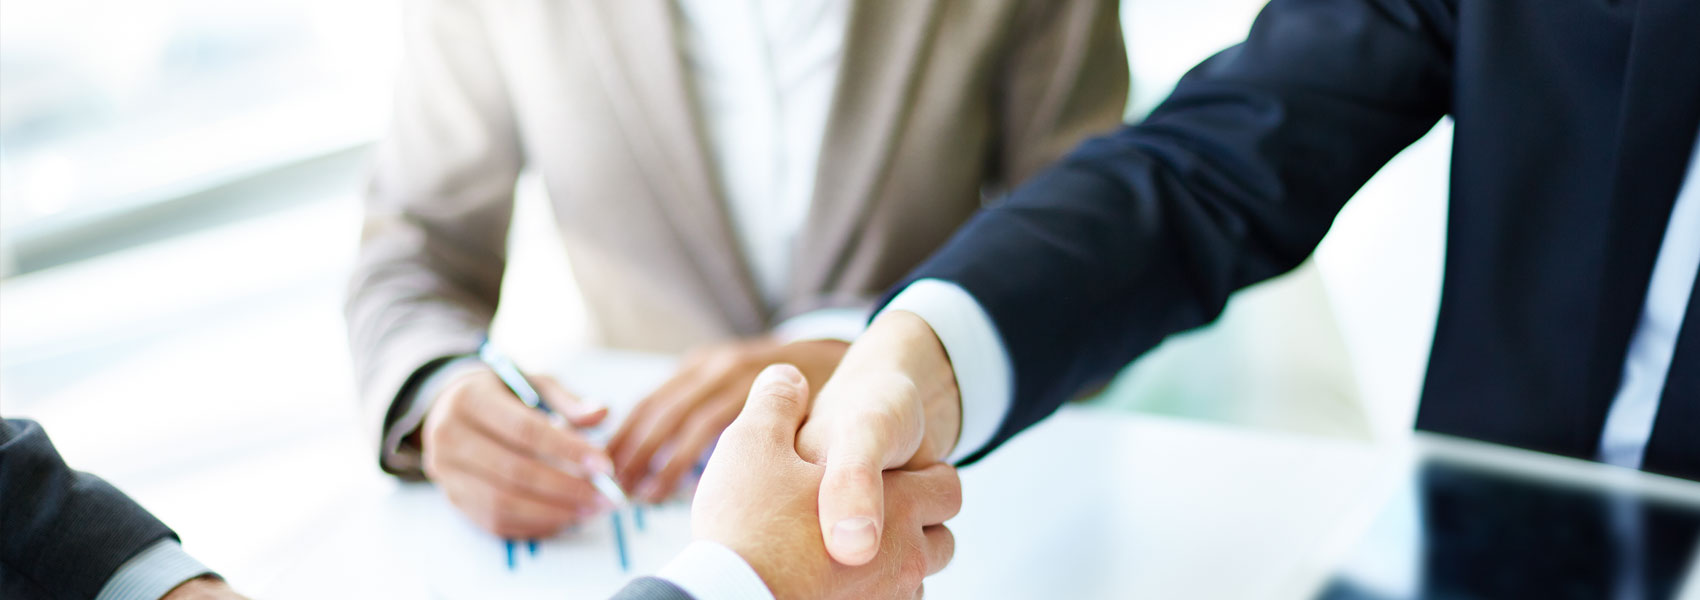 Are you looking for an Insolvency and Liquidation Service in Liverpool?